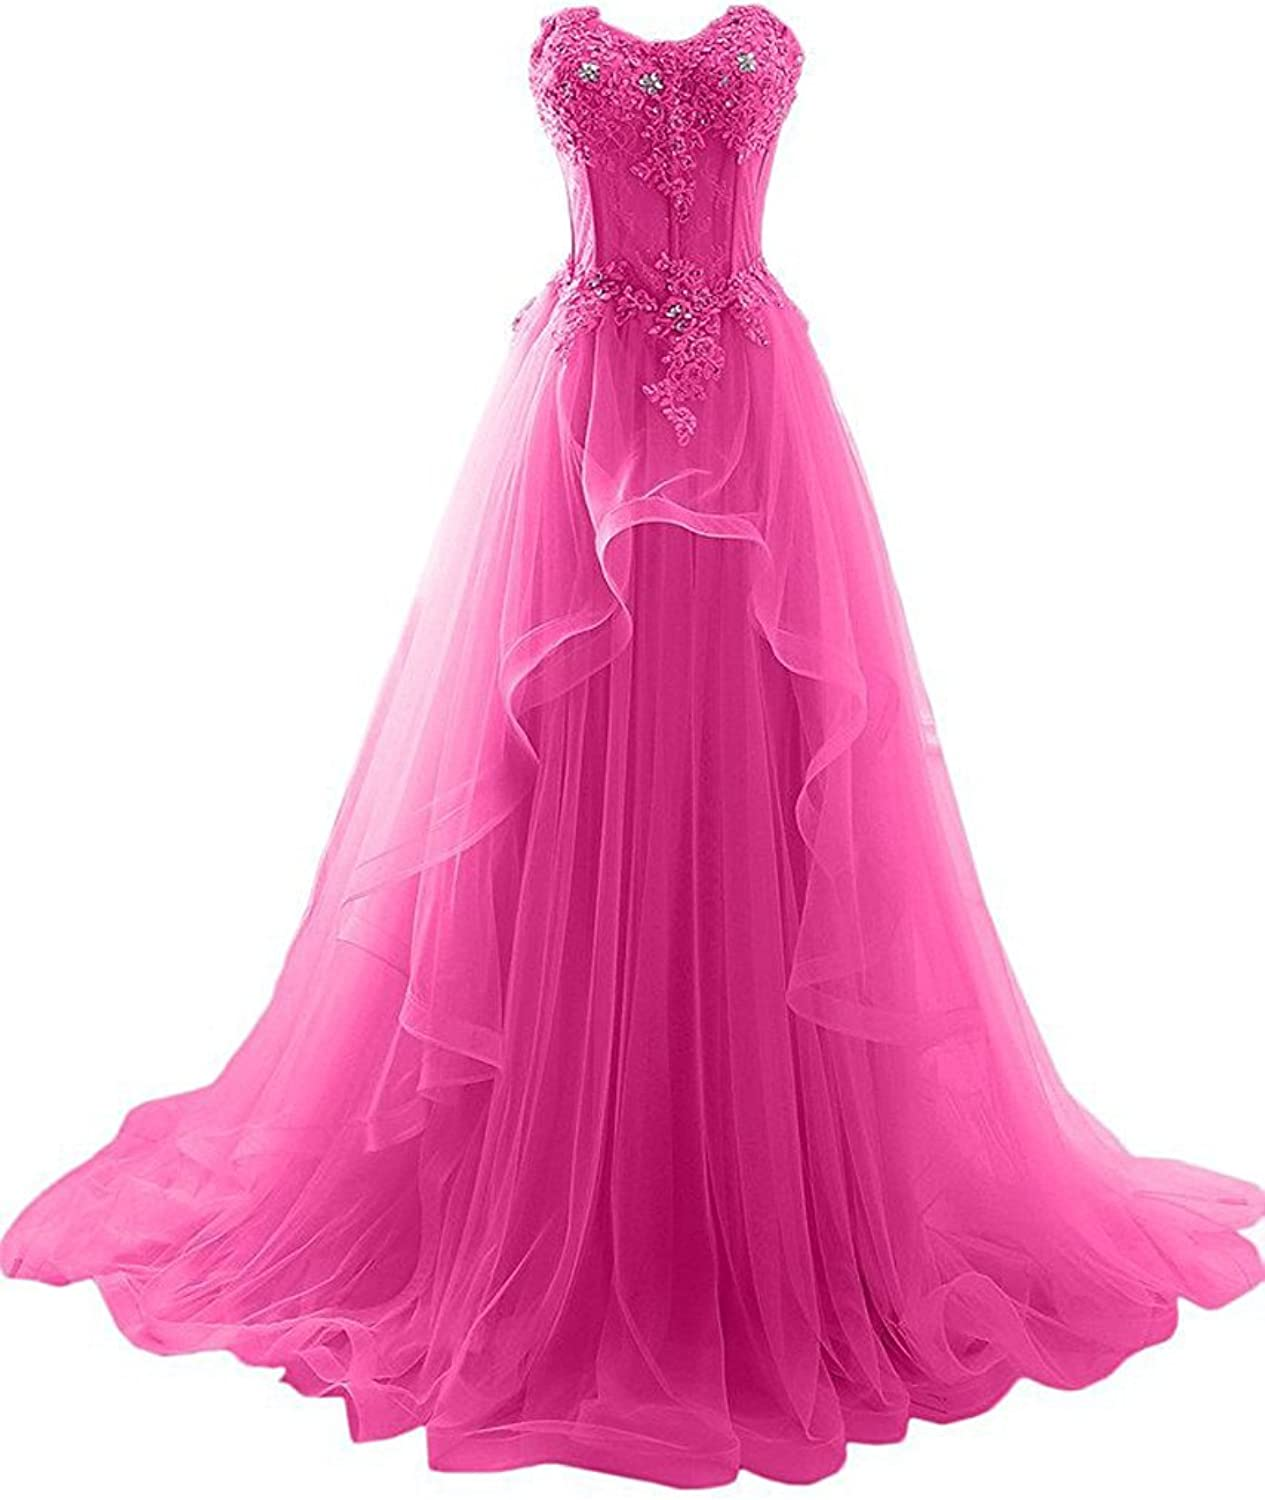 Beilite Sweetheart Beaded Prom Dress Tulle Long Party Gown